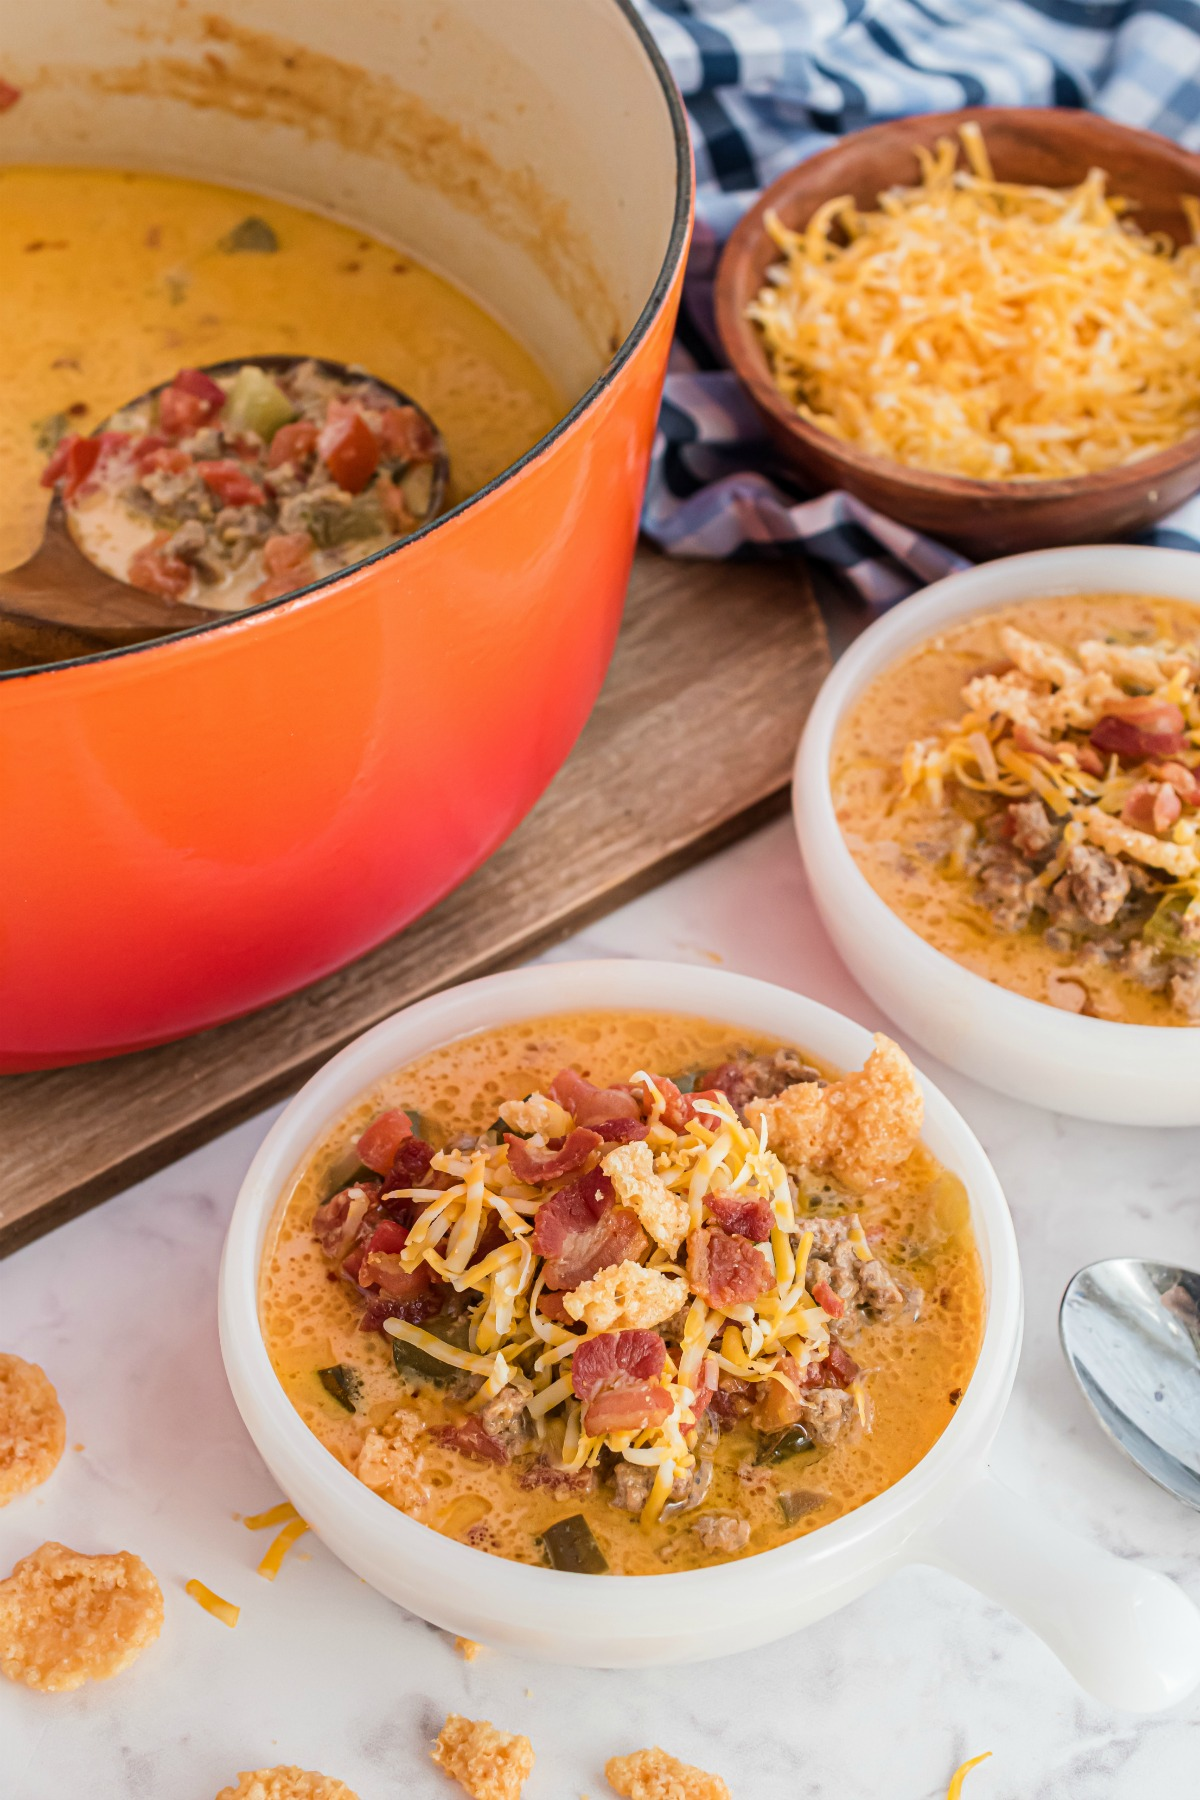 Bowls of cheeseburger soup.